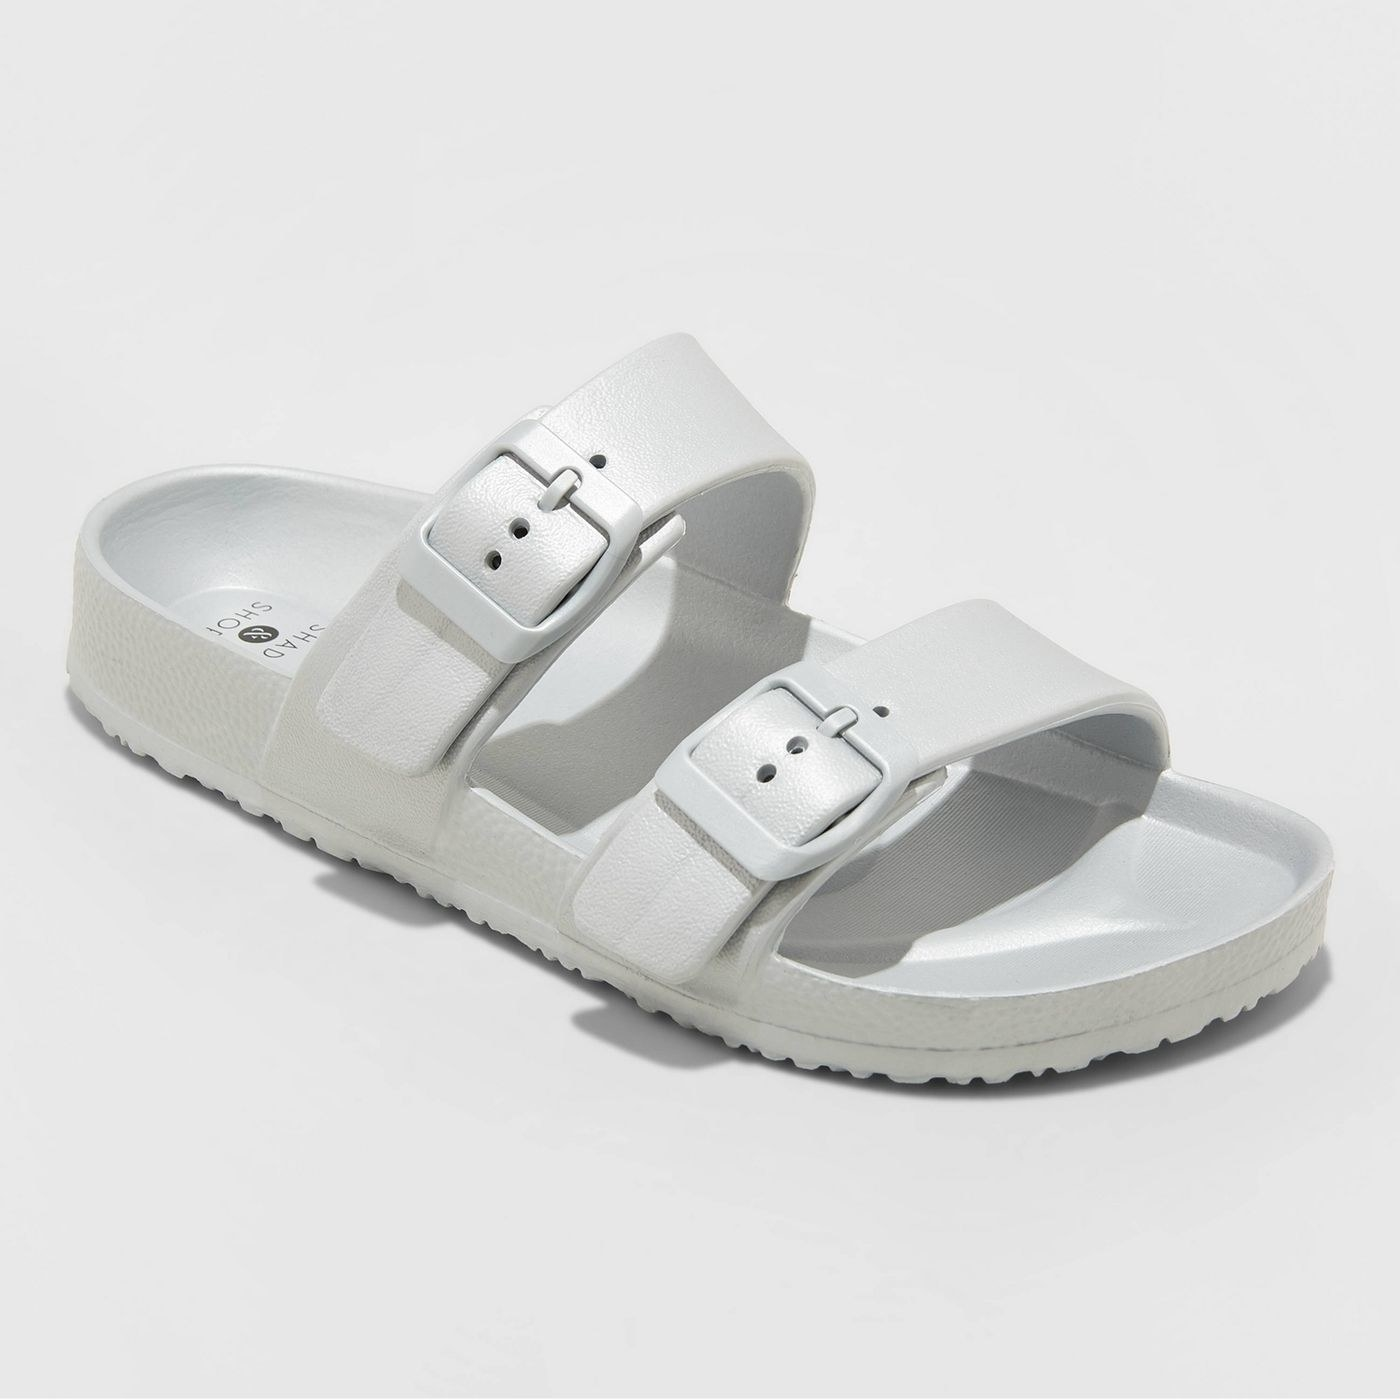 A white sandal with two buckled straps